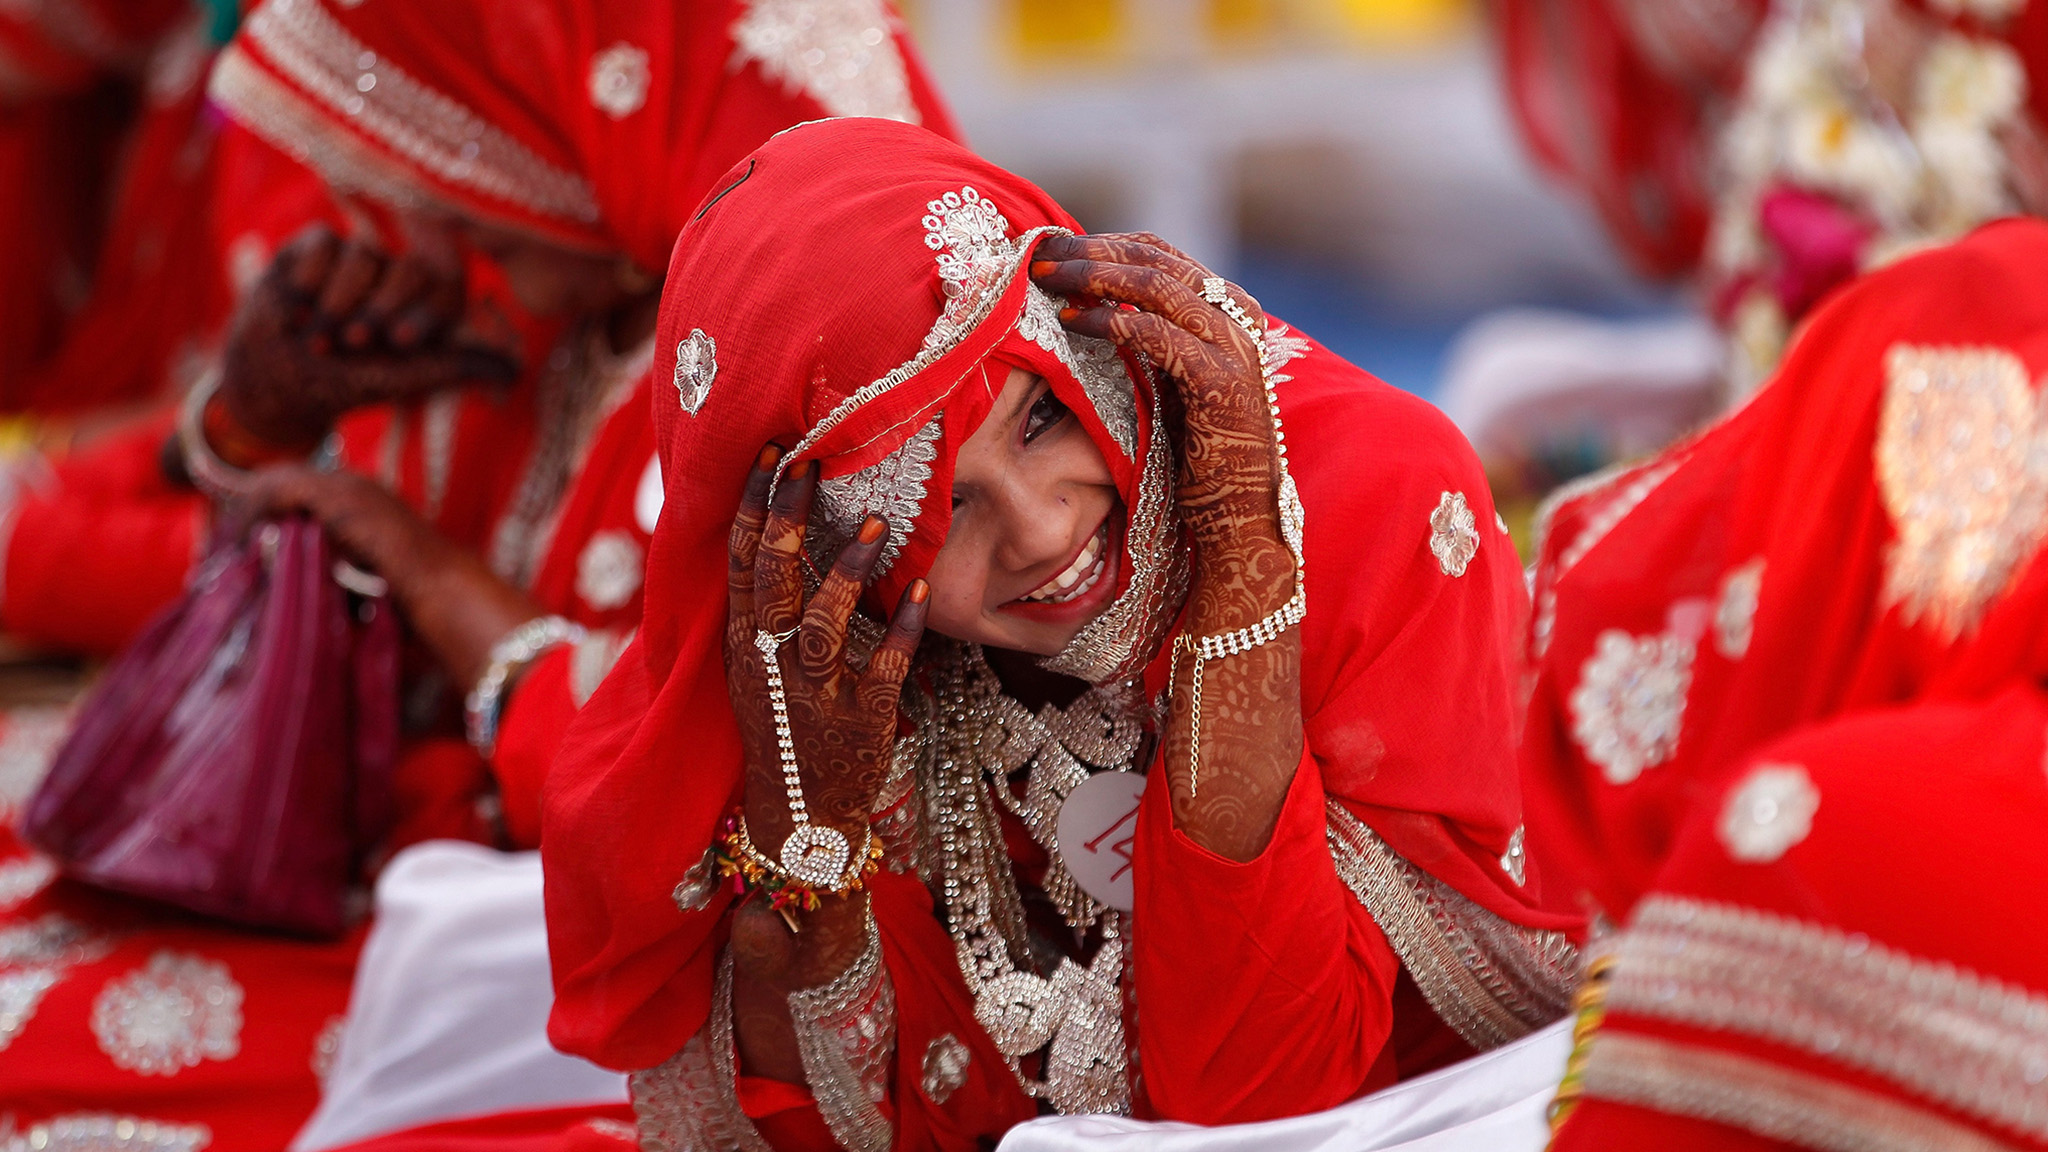 A bride reacts as she speaks with another bride during a mass marriage ceremony, in which, according to its organizers, 51 Muslim couples took their wedding vows, in Ahmedabad